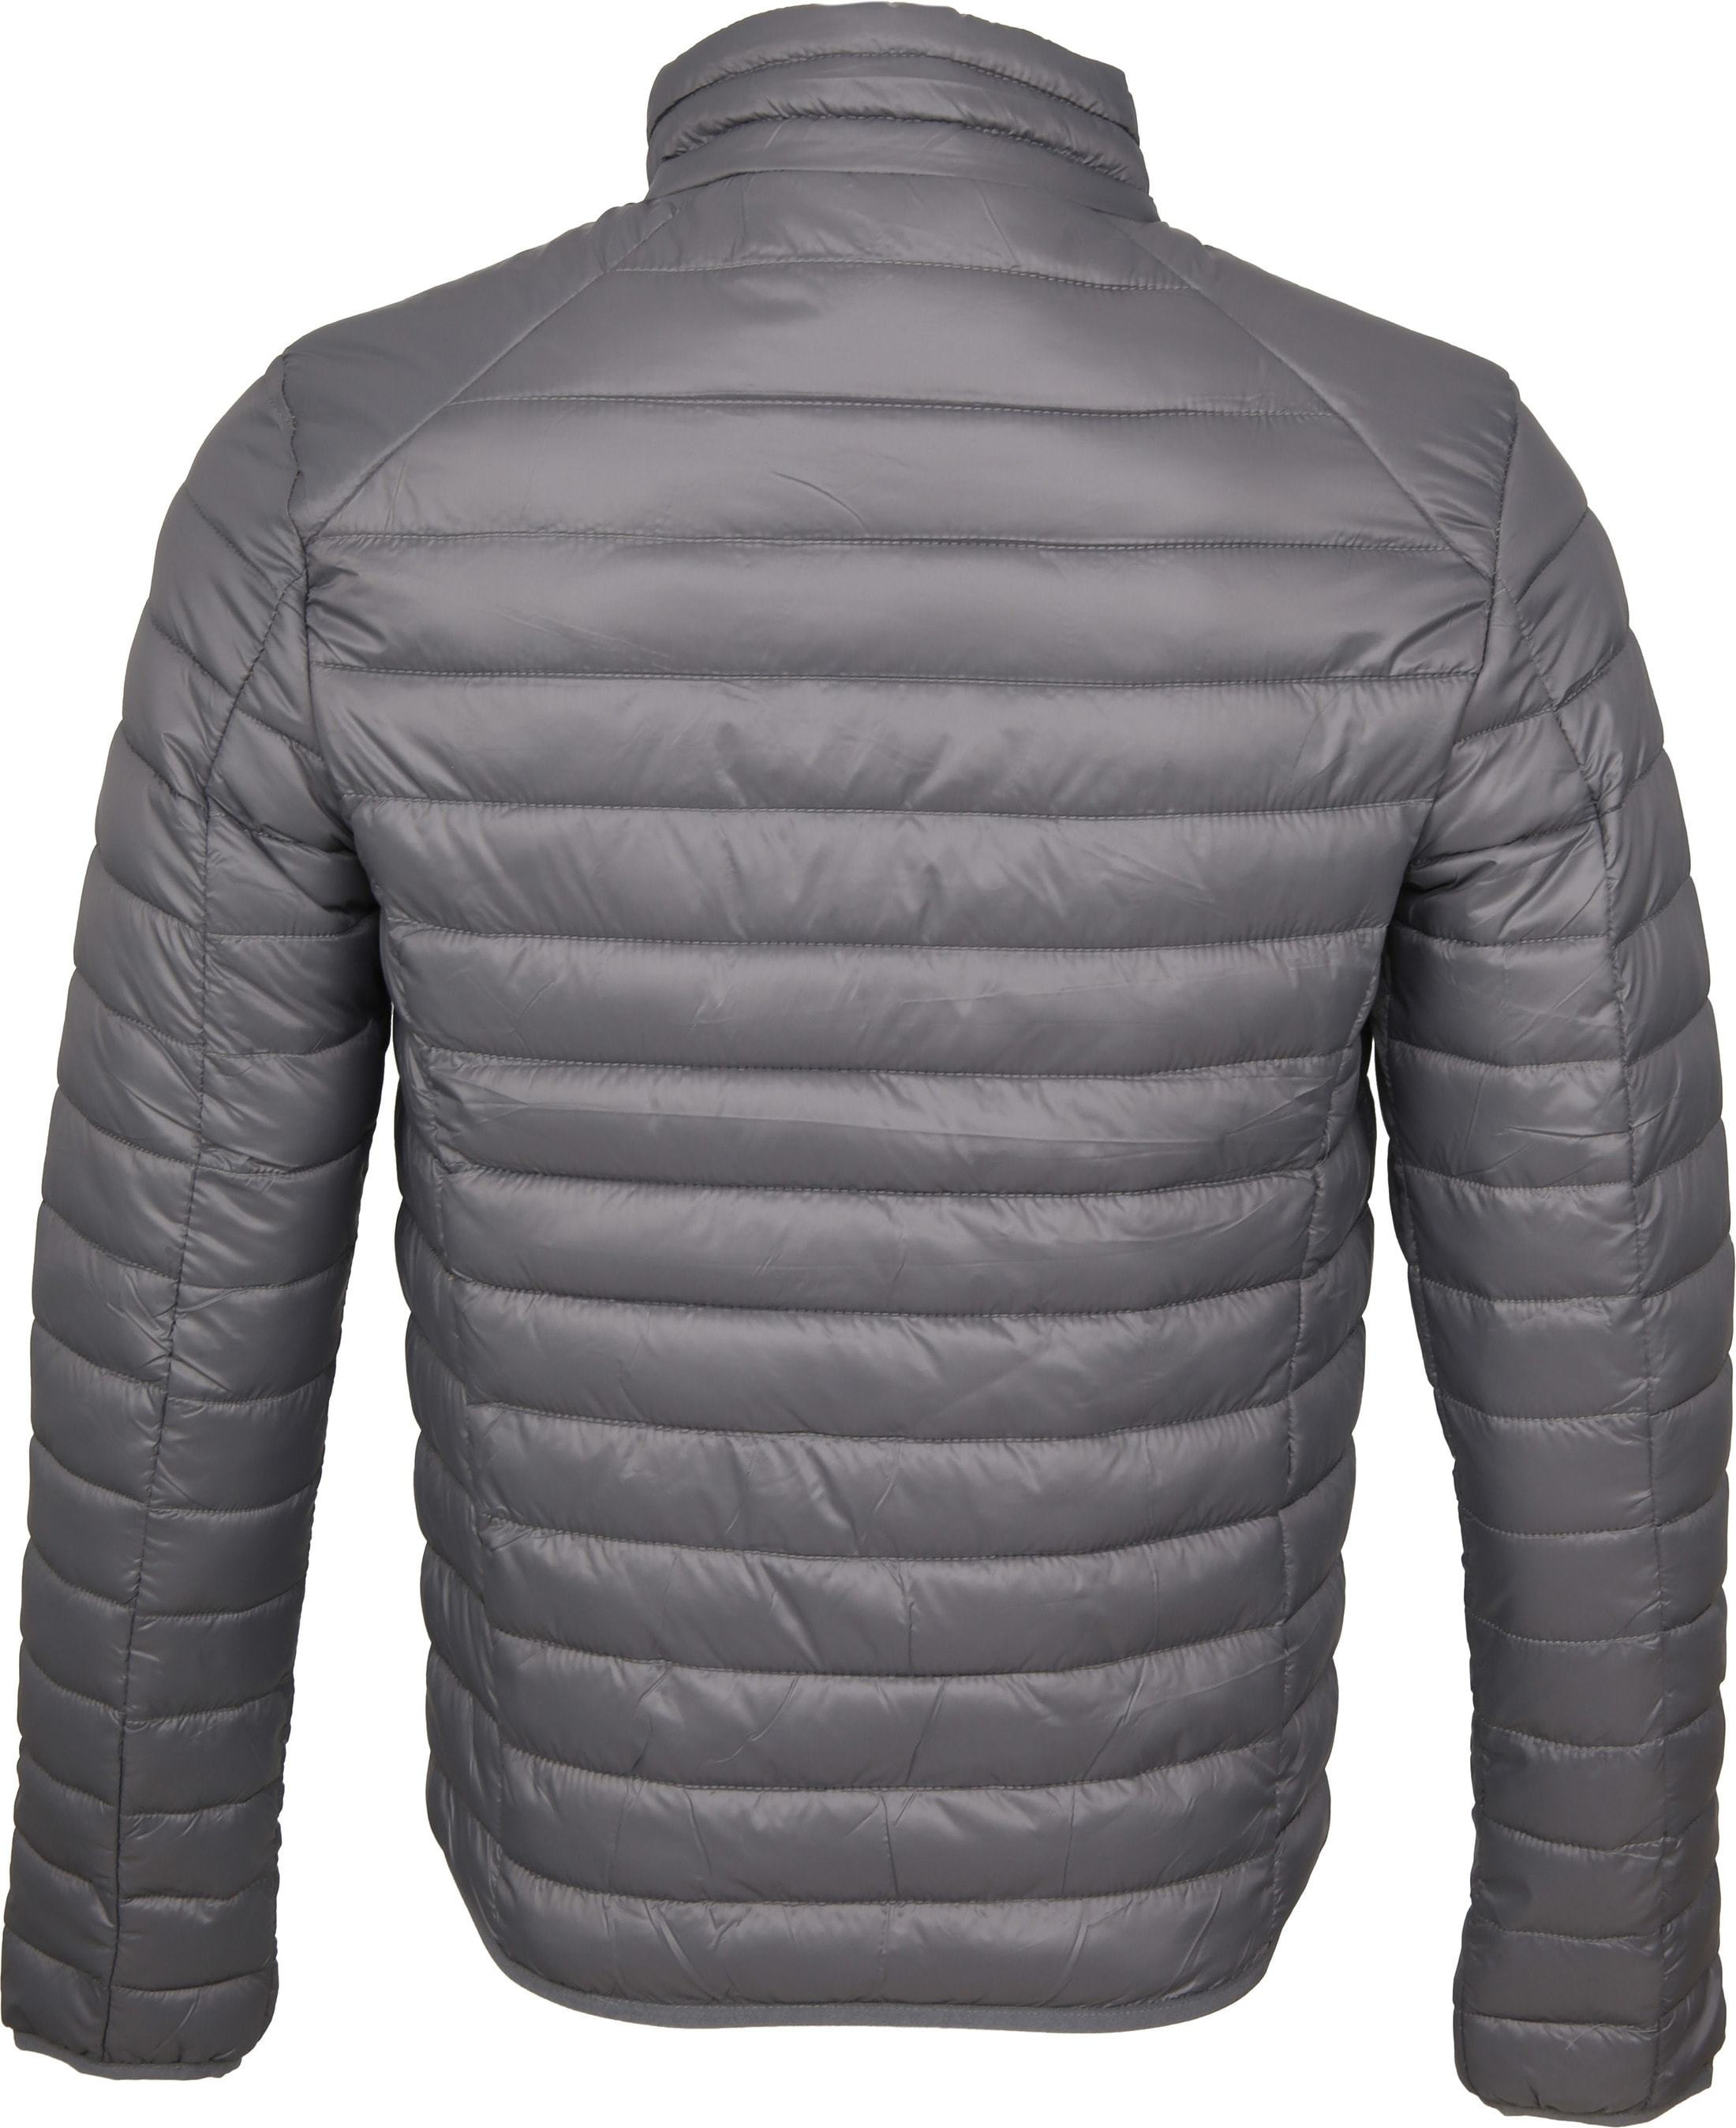 Suitable Jon PCK Jacket Grey foto 4